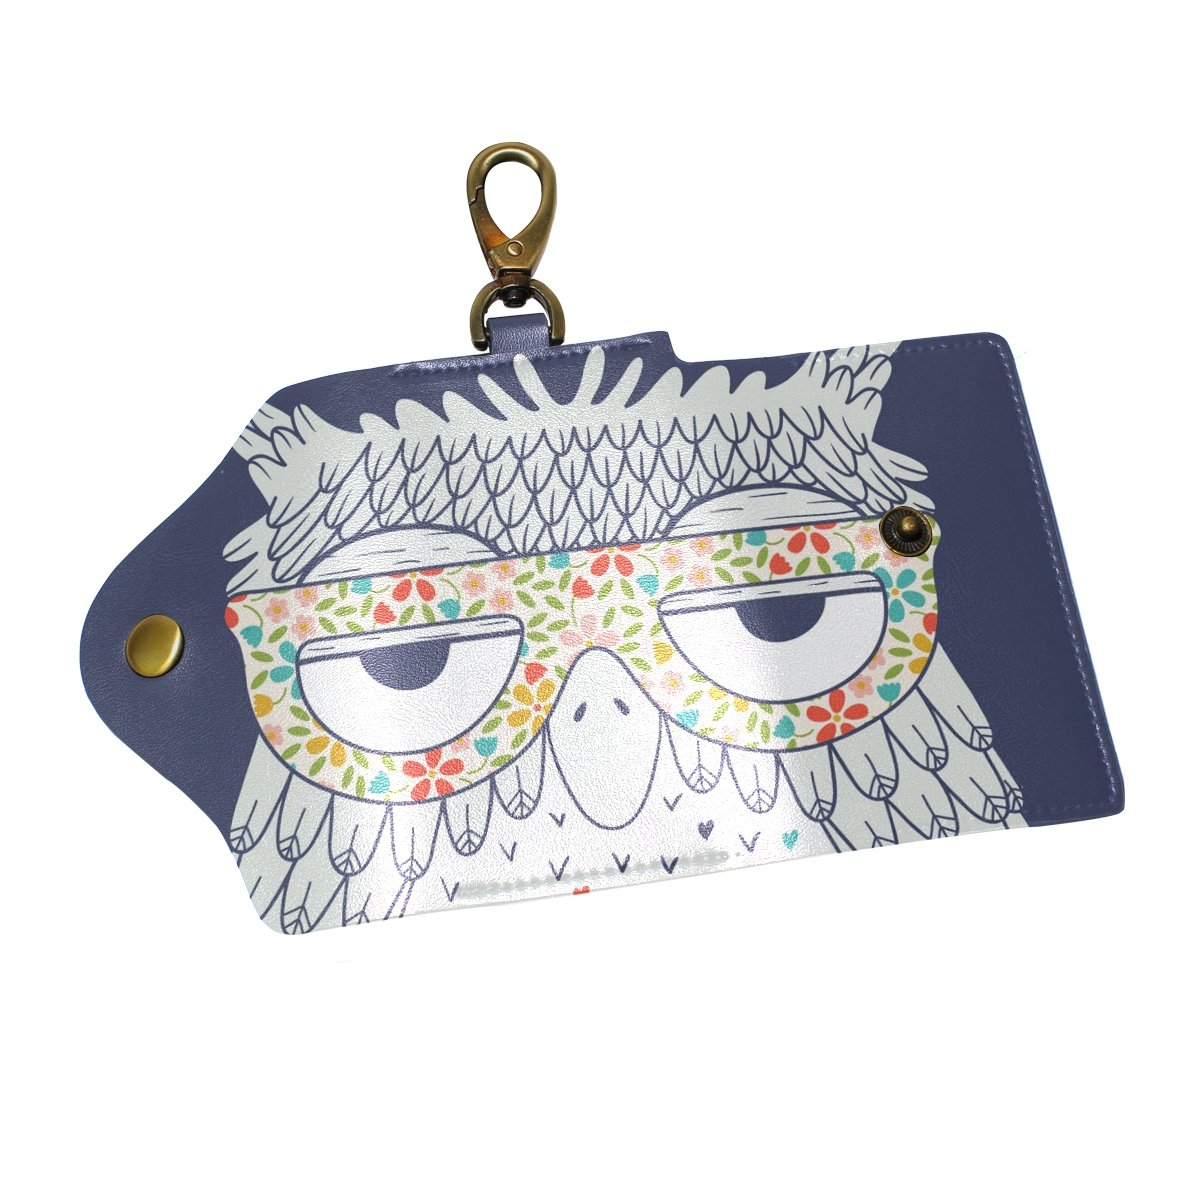 DEYYA Owl Pattern Leather Key Case Wallets Unisex Keychain Key Holder with 6 Hooks Snap Closure